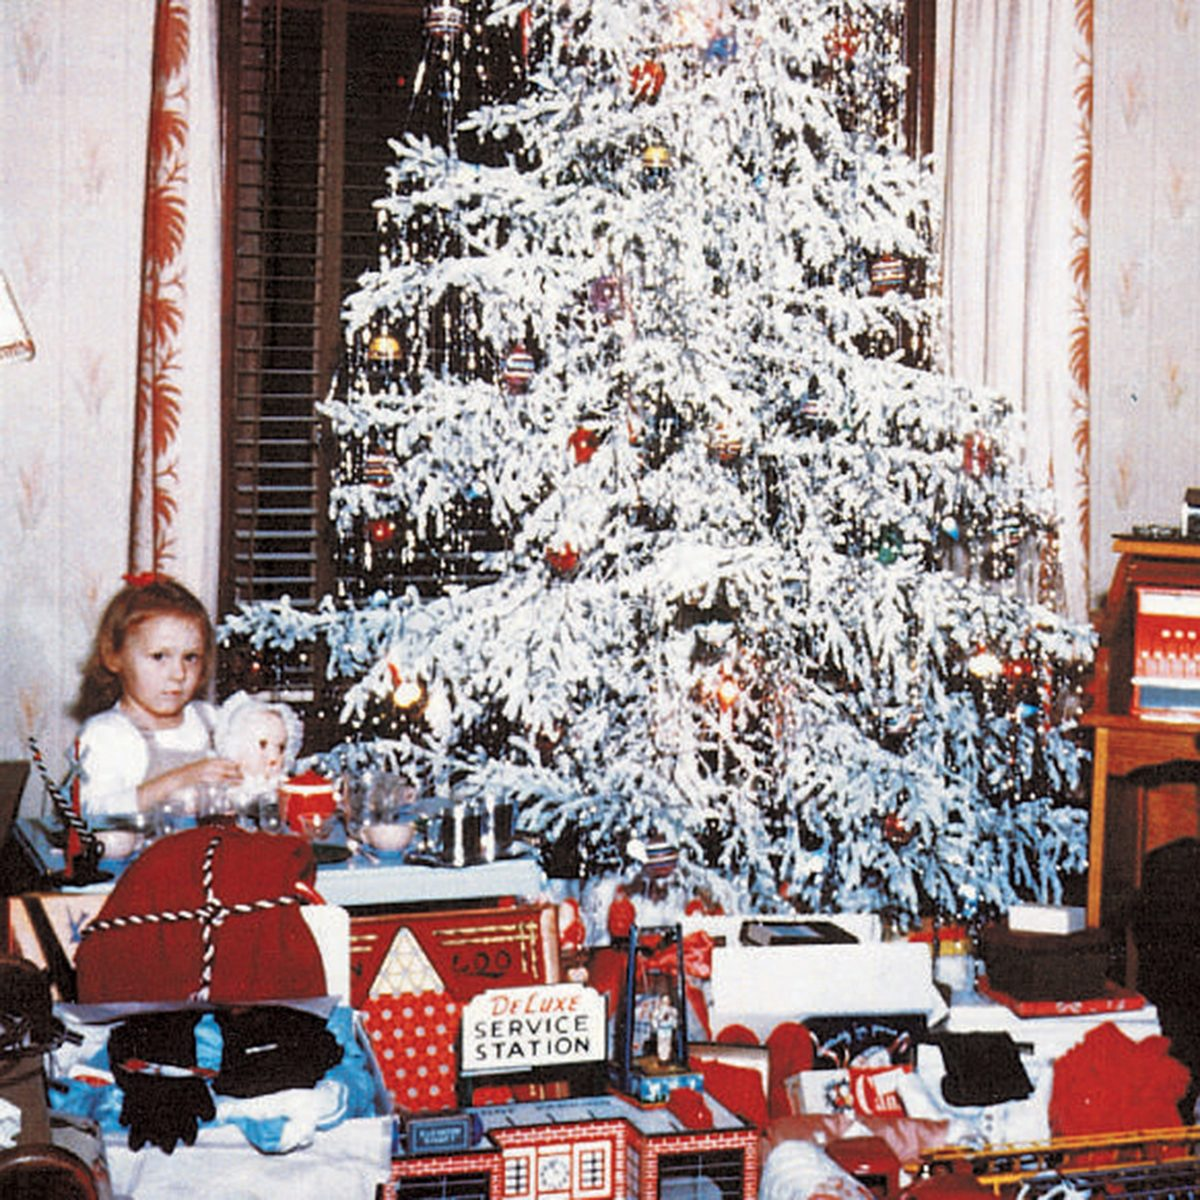 5a1f5ff5b230 Girl and a boy sitting among opened presents under a Christmas tree